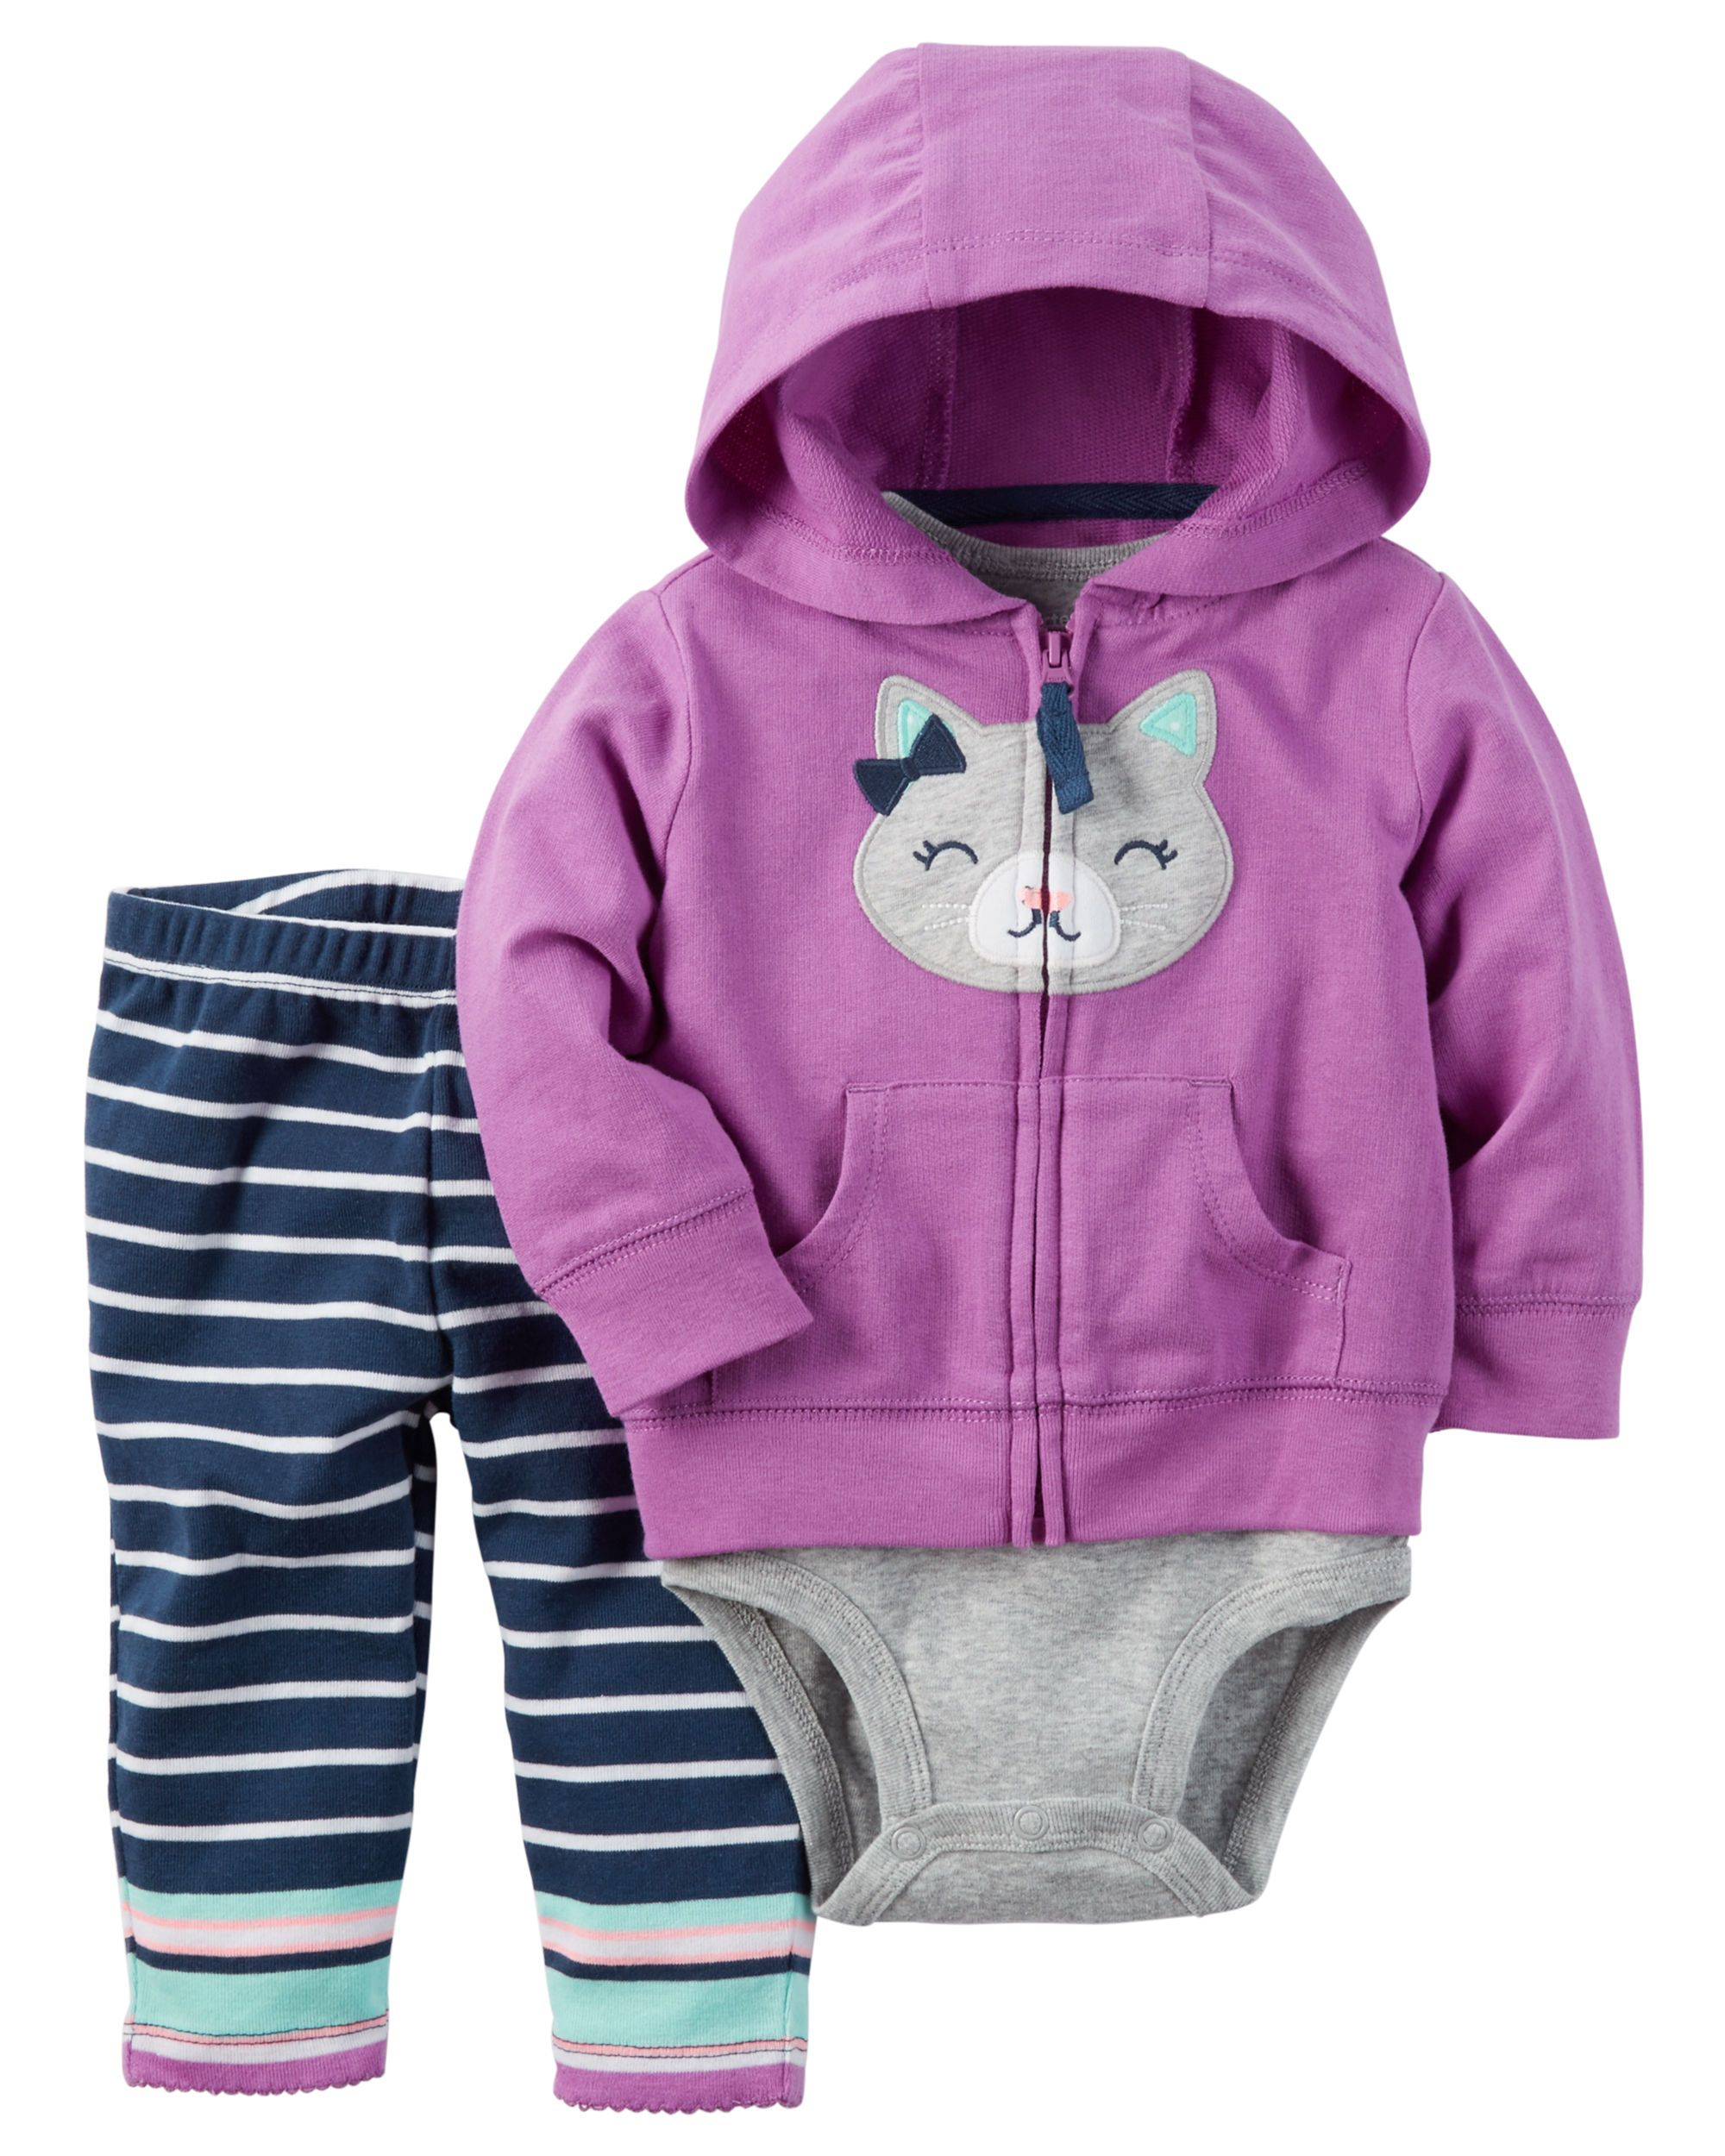 dfb3cf6cb294 3-Piece Little Jacket Set